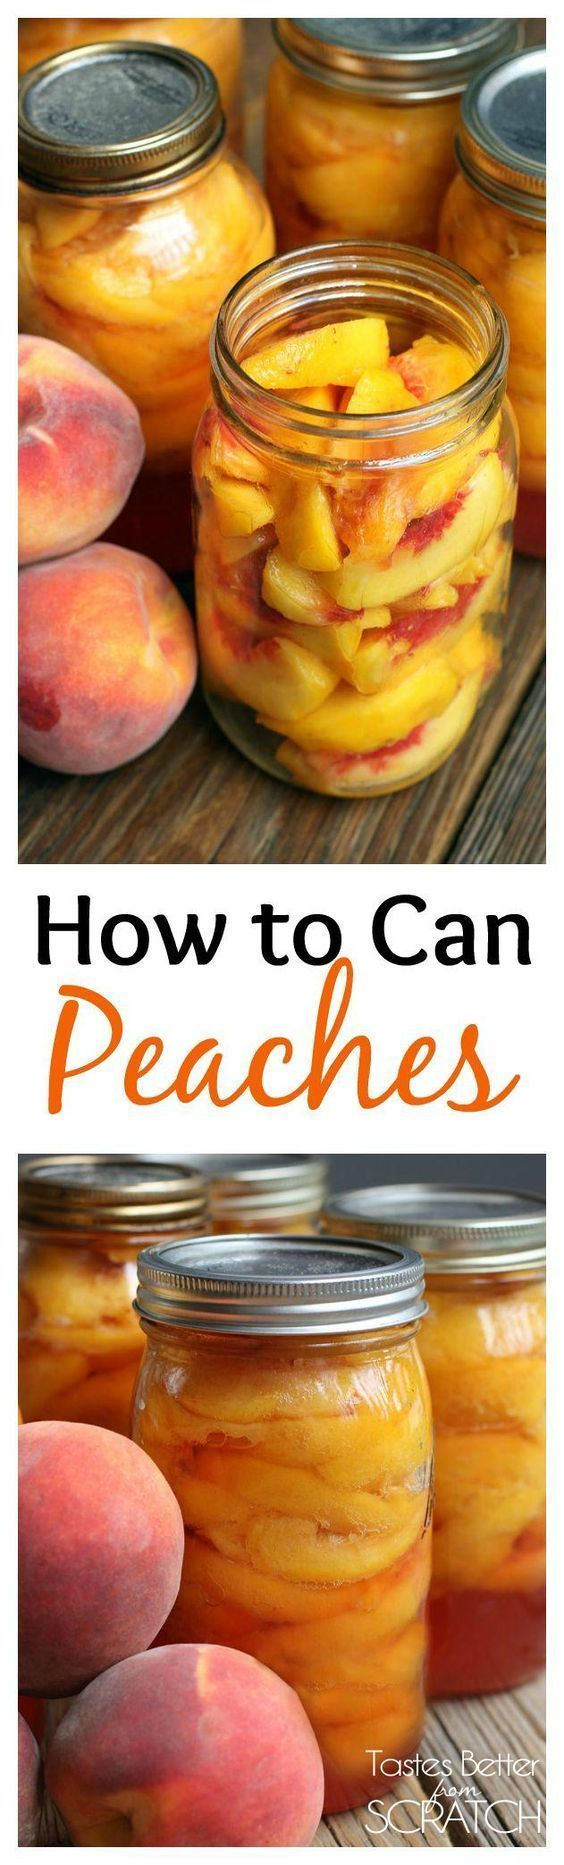 There's nothing better than home canned peaches! Find the easy instructions on http://TastesBetterFromScratch.com